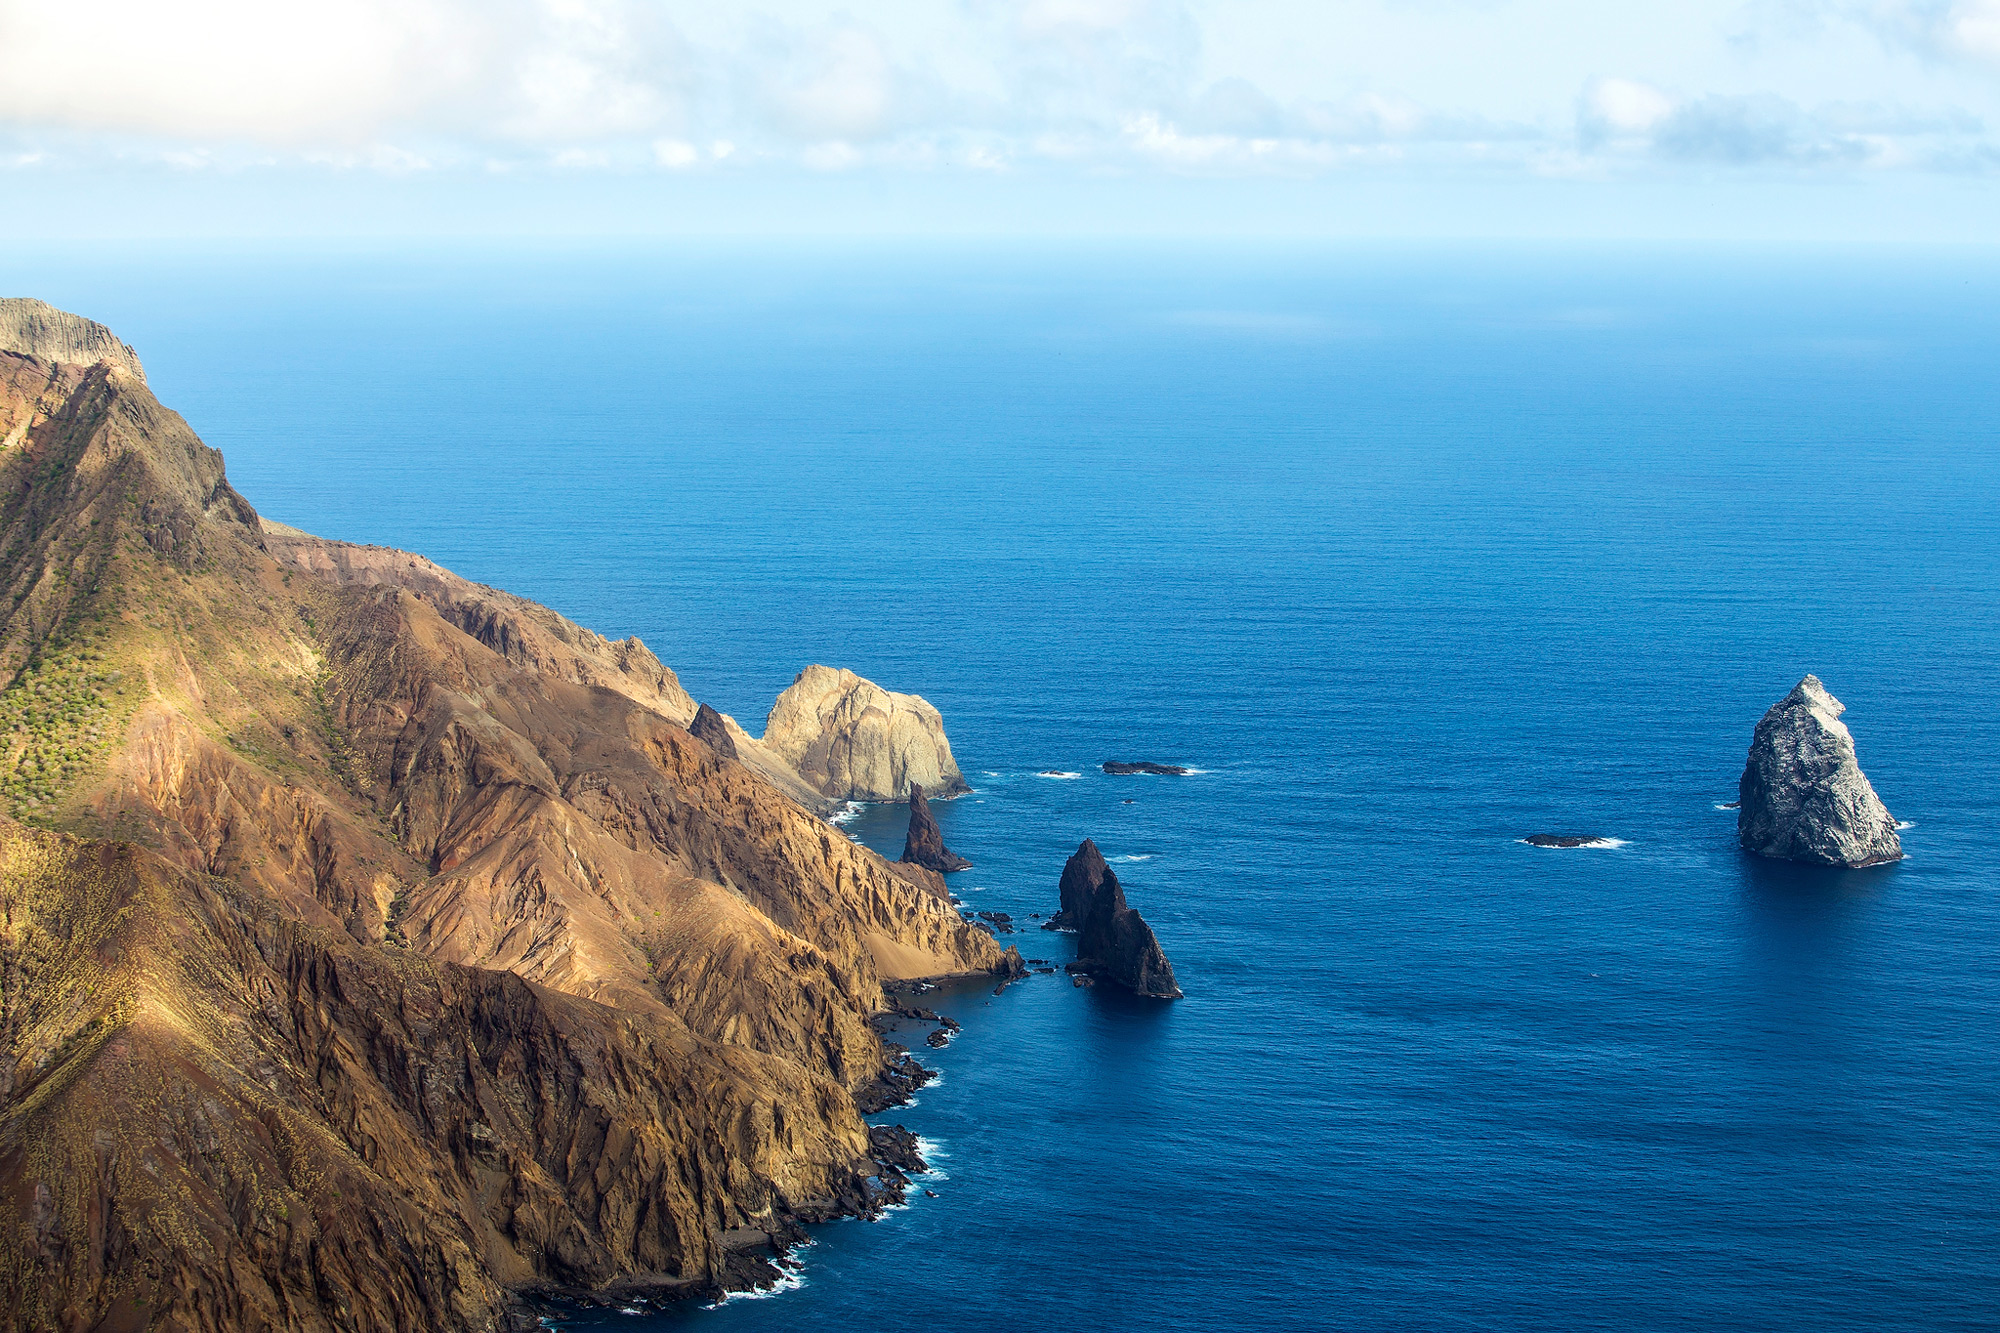 View from elevated position on St. Helena Island